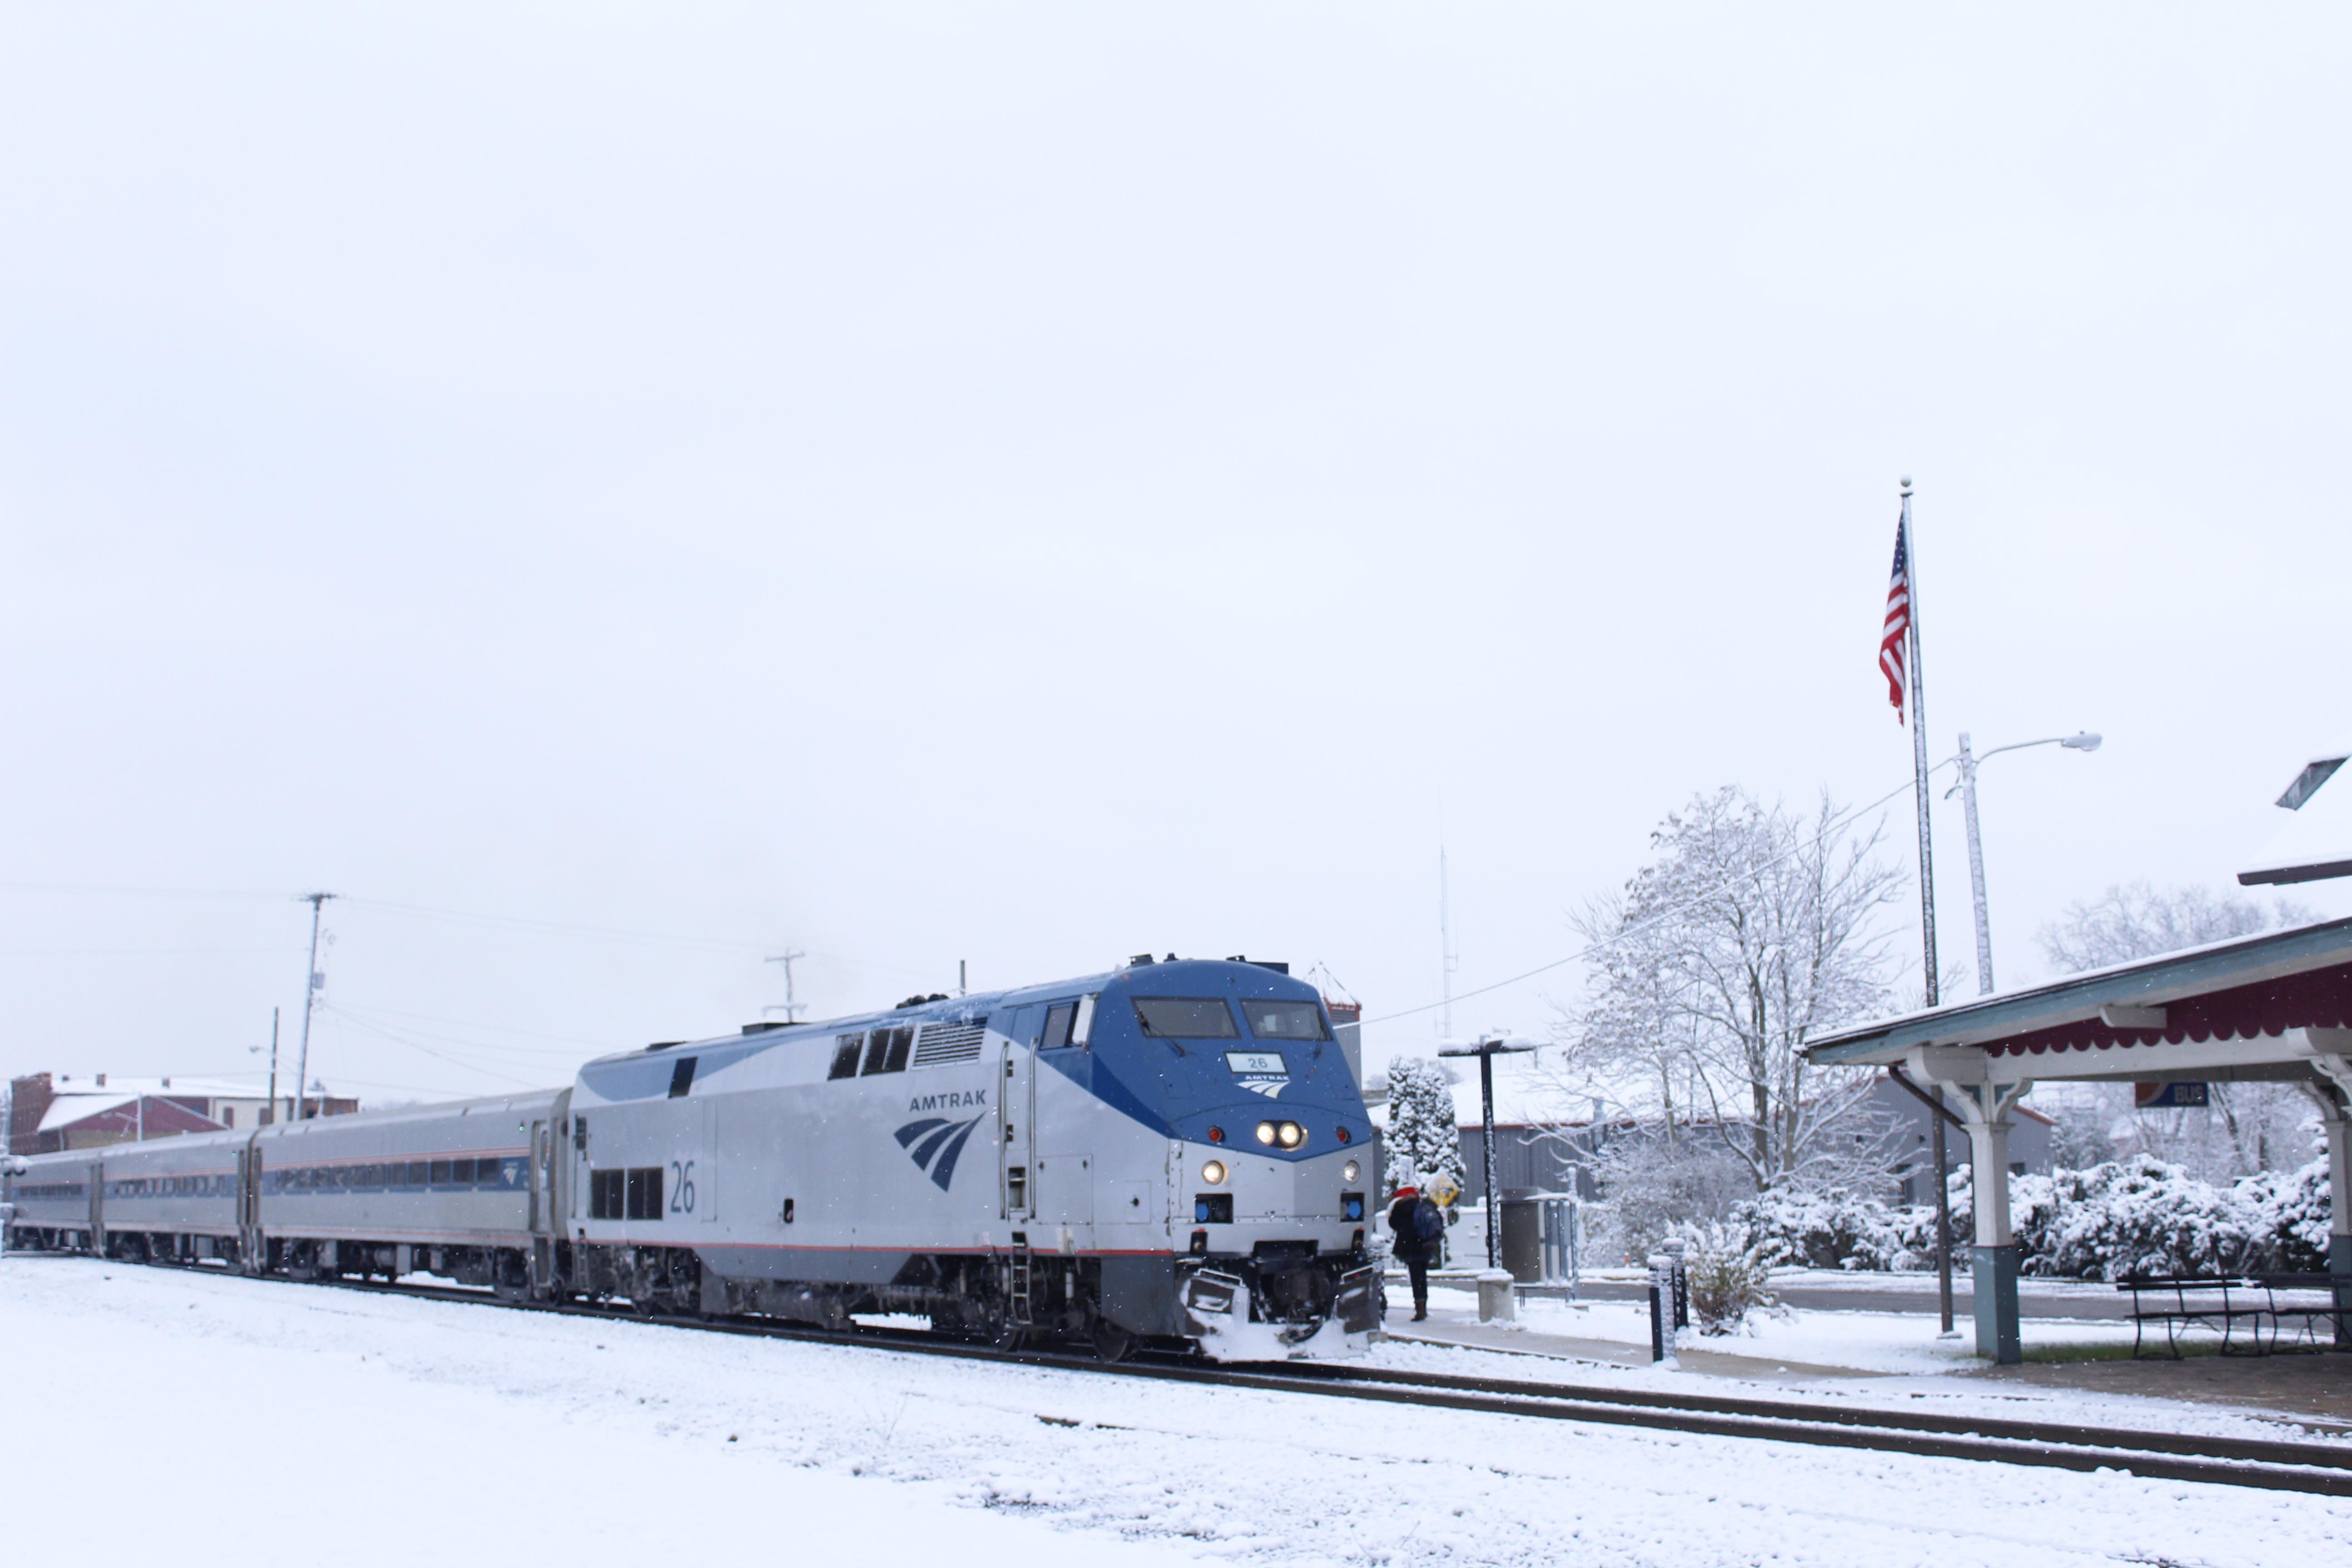 Rail line from Dearborn to Kalamazoo awarded more than $15M grant for safety improvements